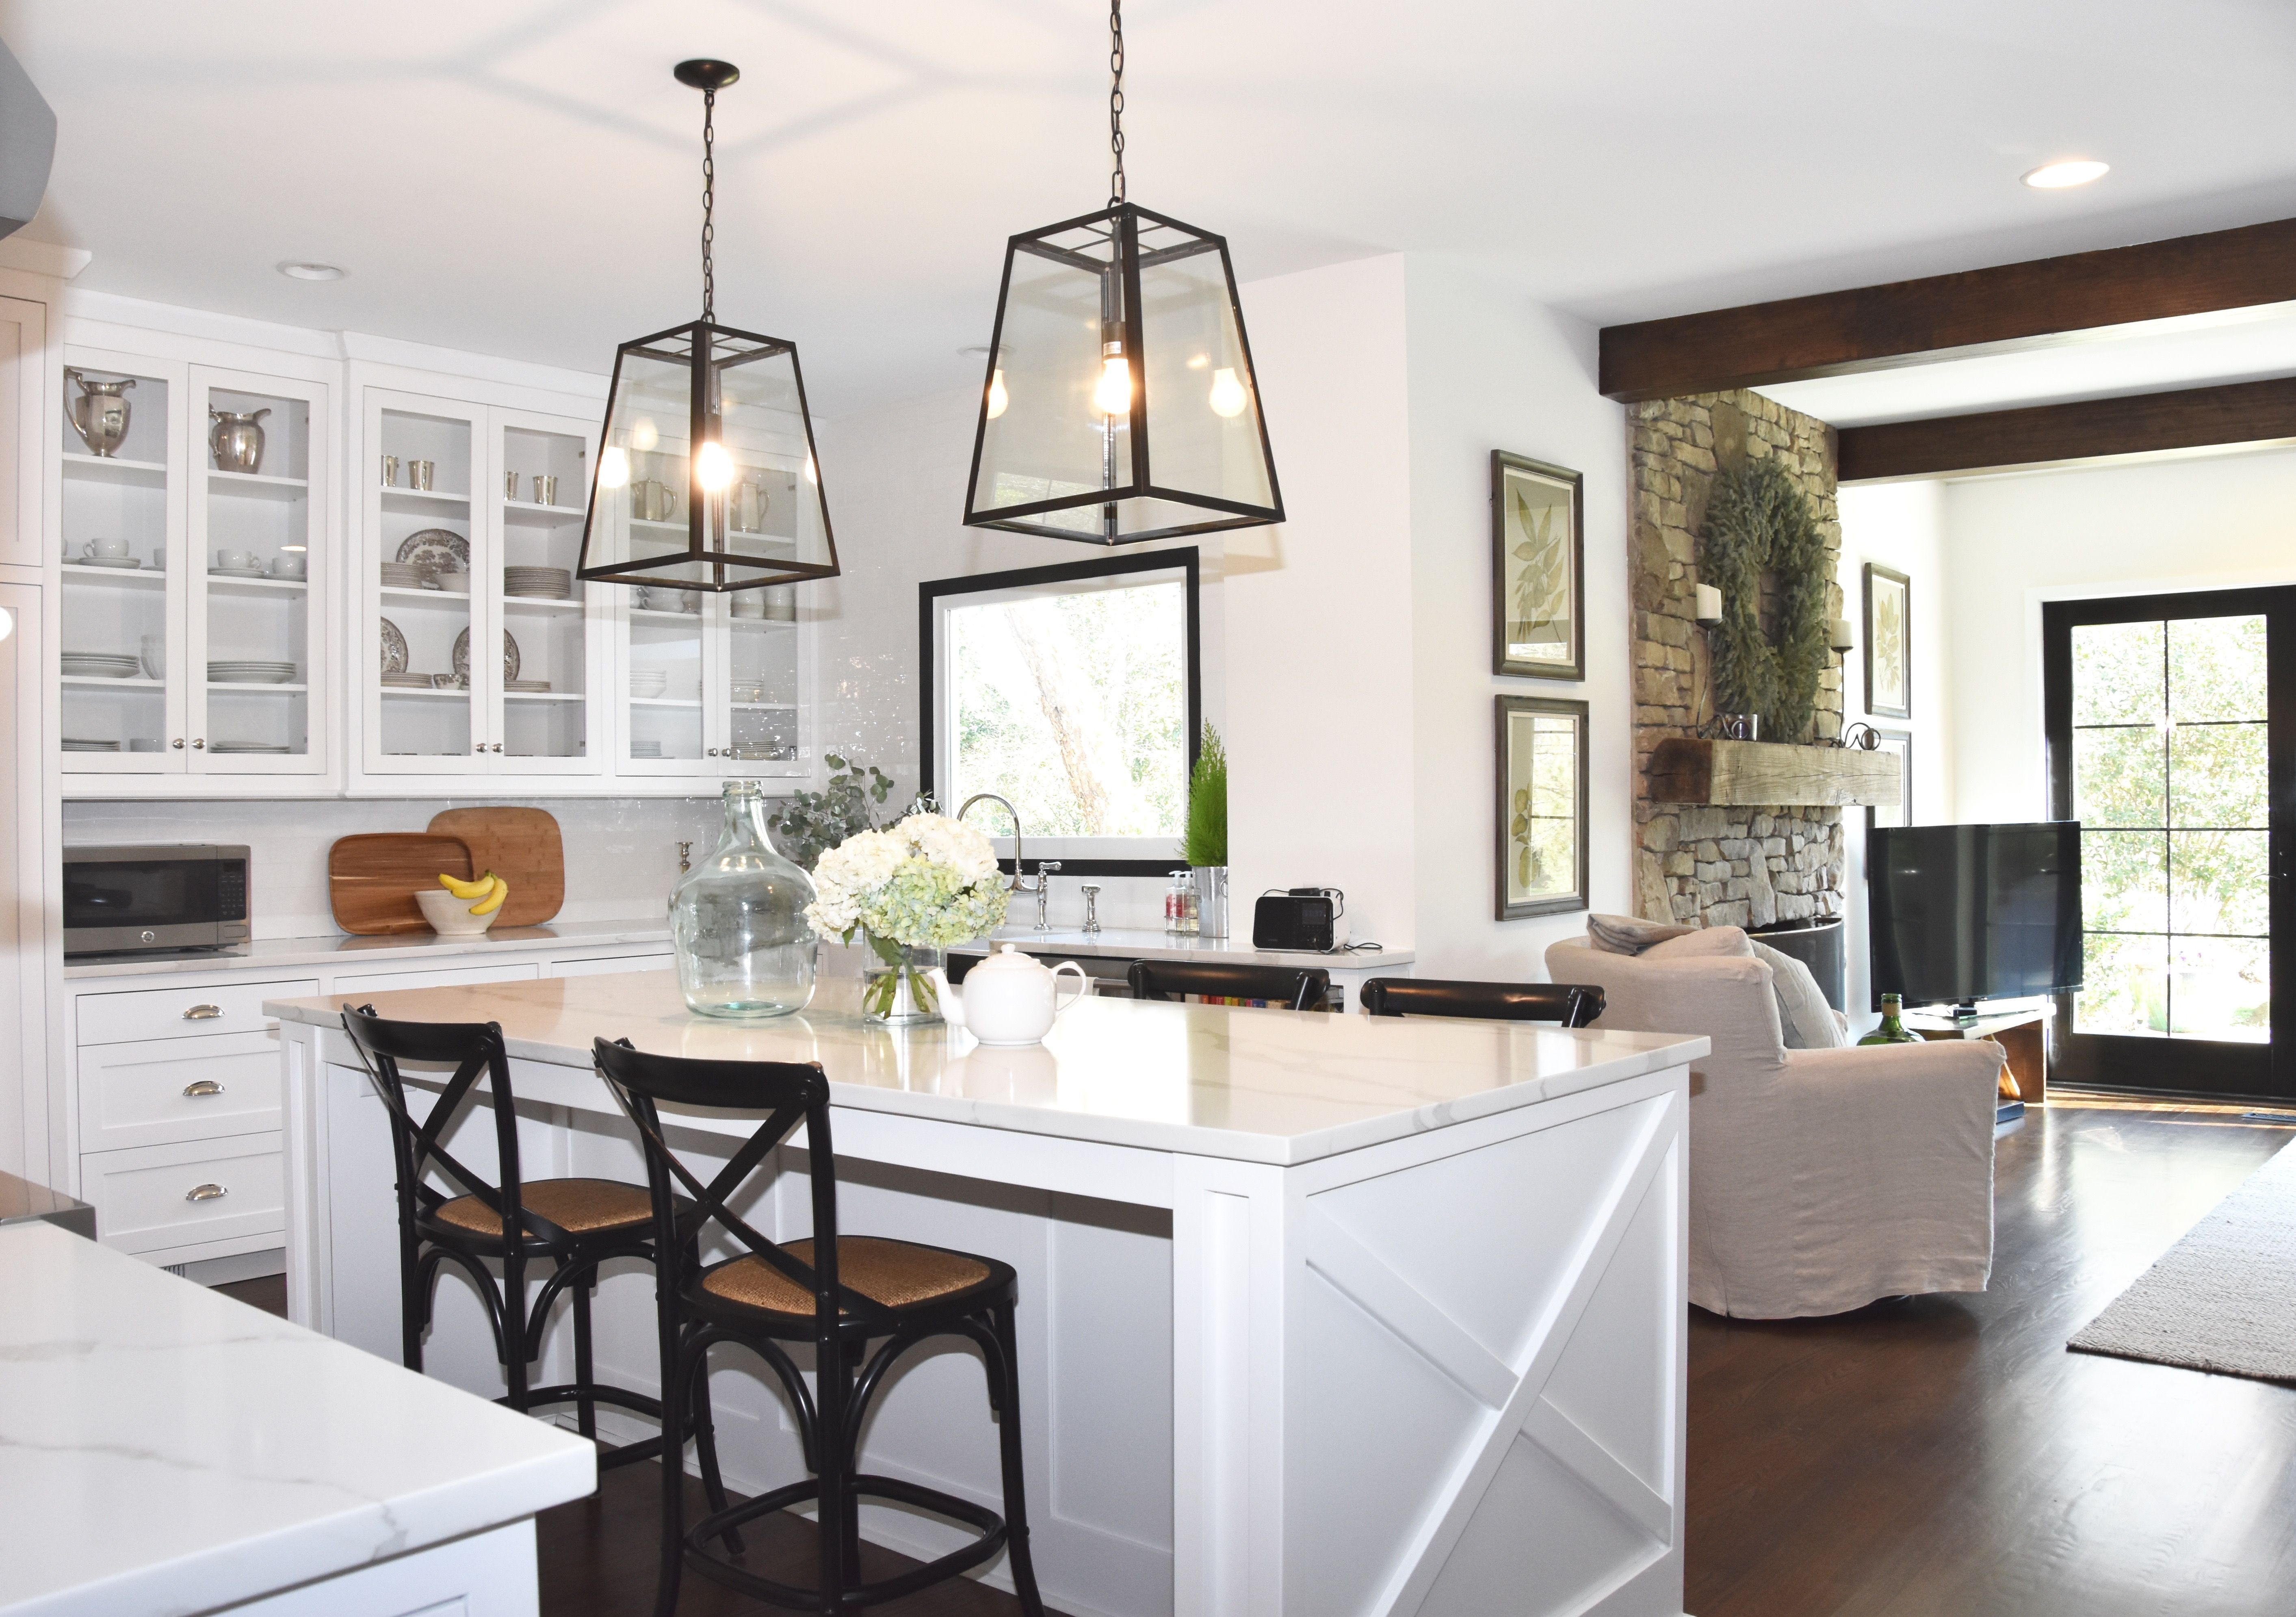 17 Fabulous Kitchen Remodel Layout Before After Ideas